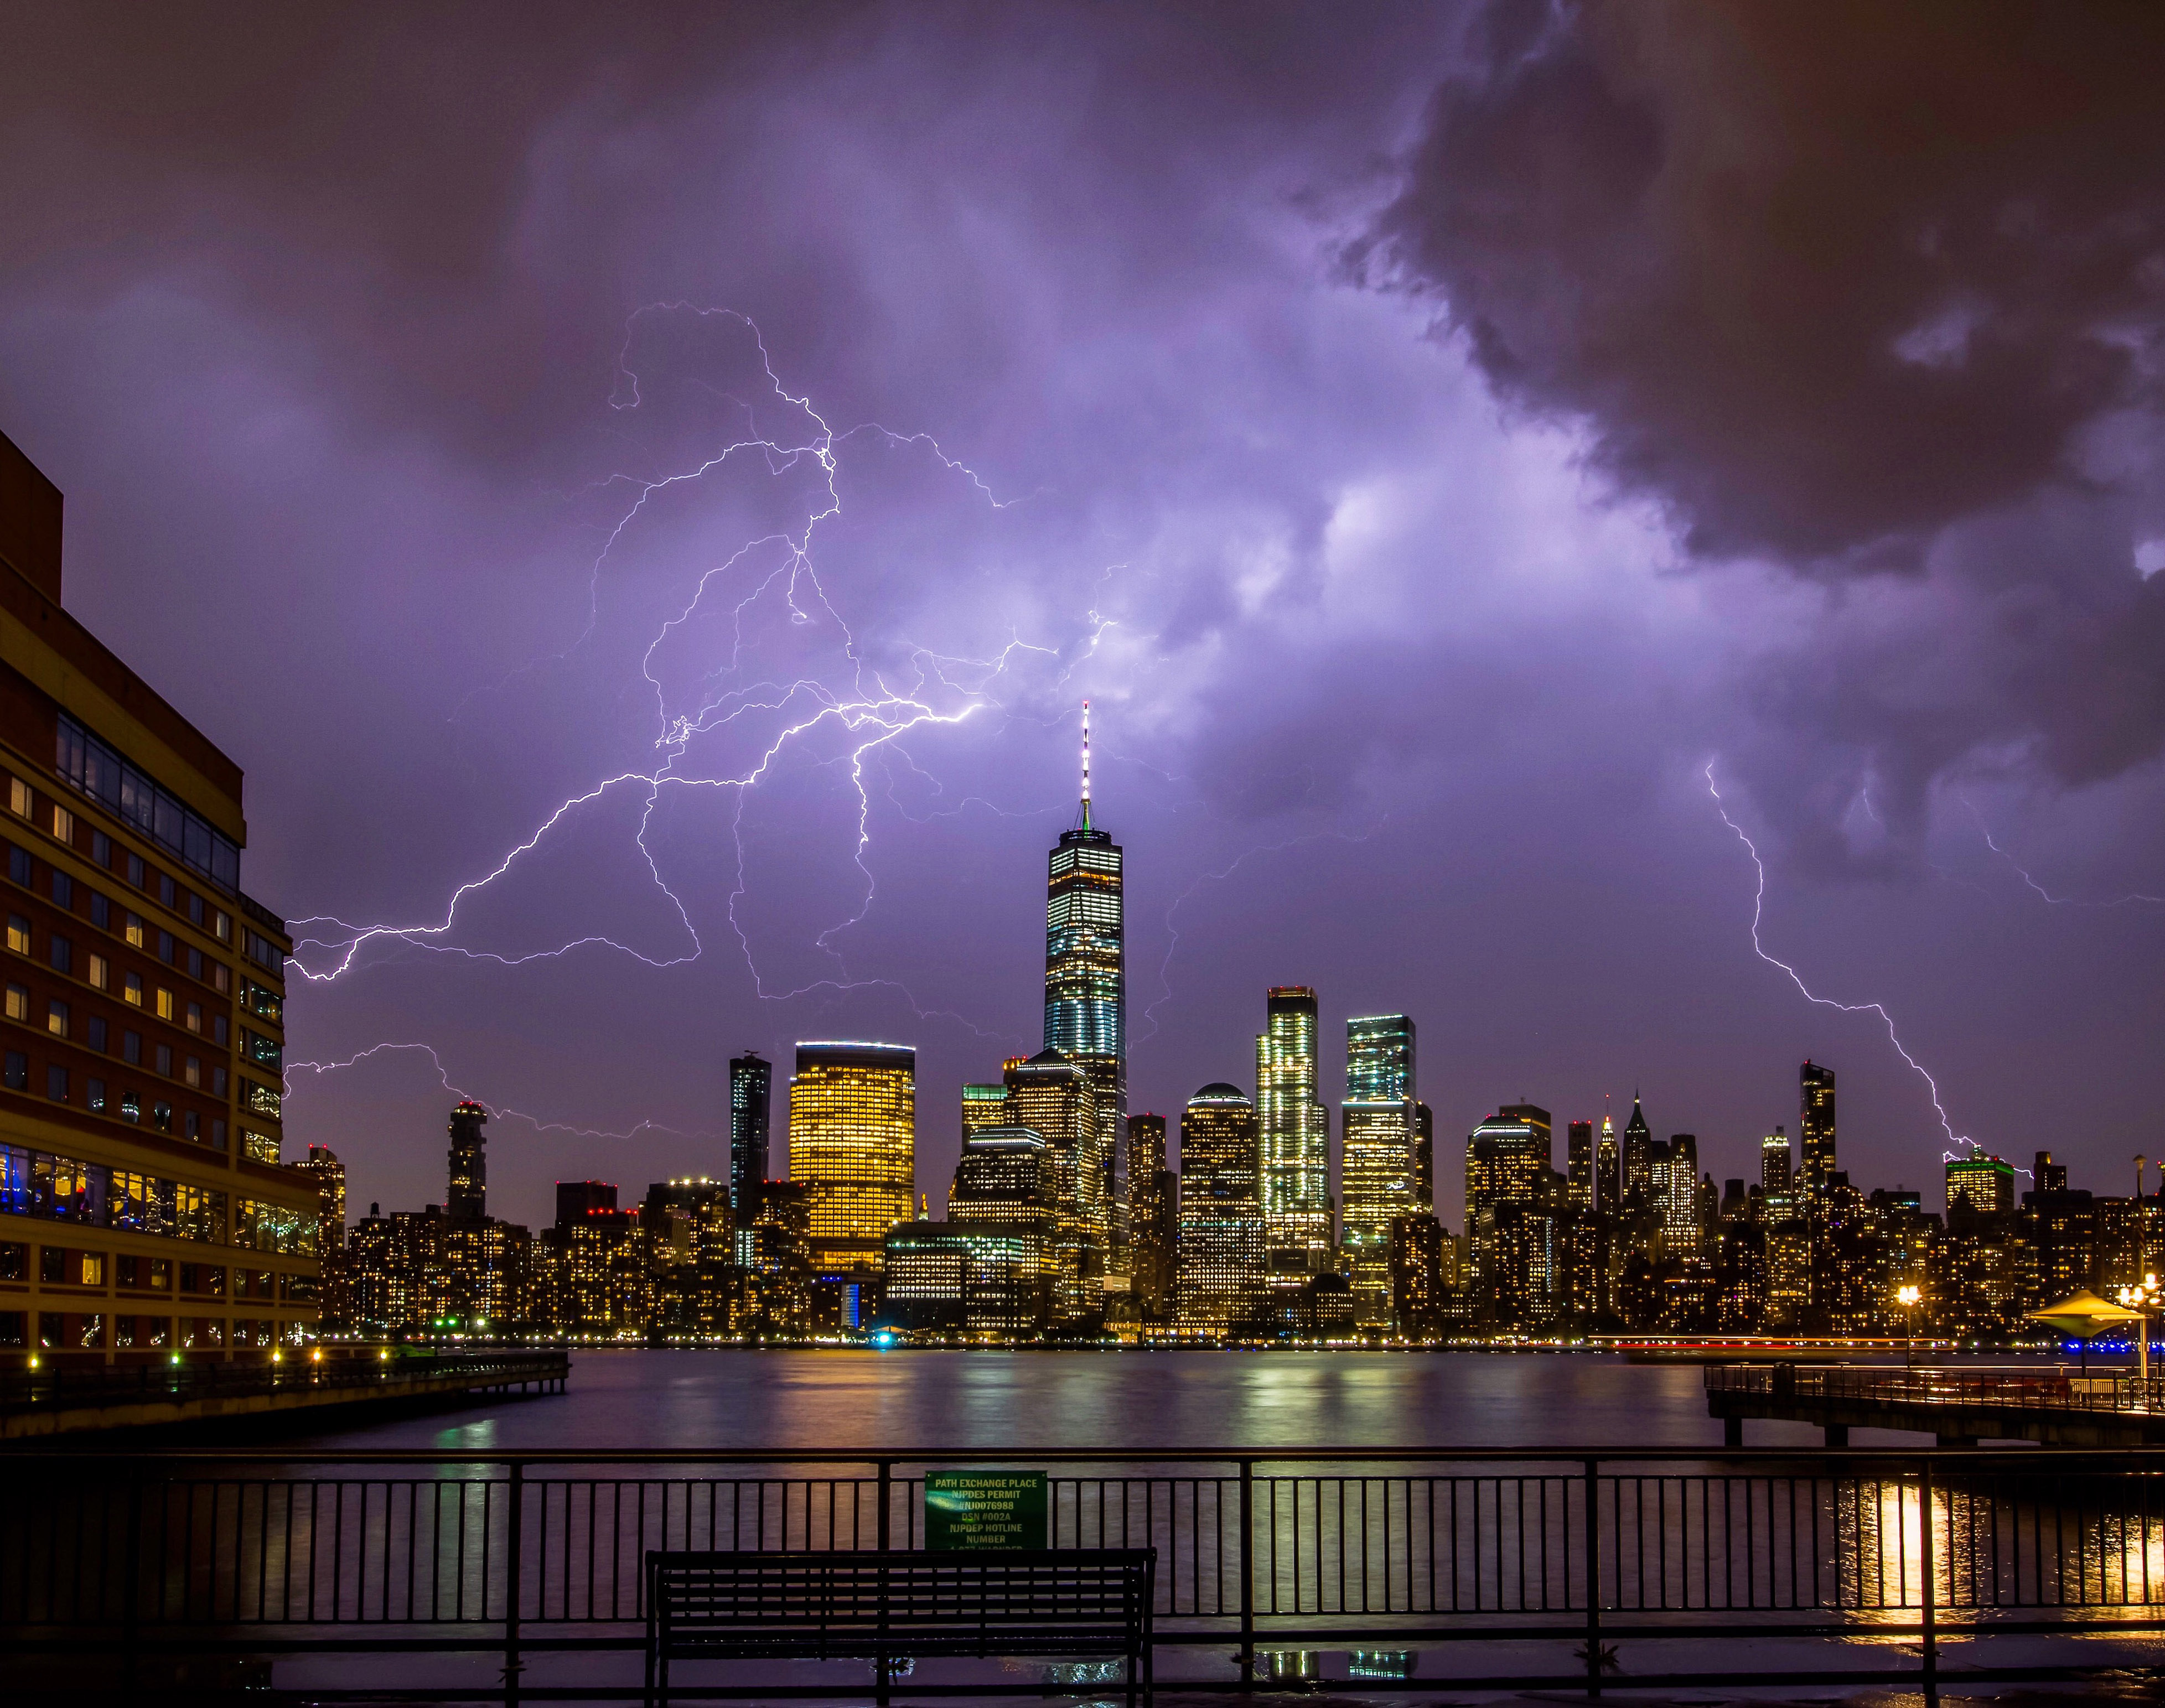 Thunderbolts and lightning!! Spectacular timing as